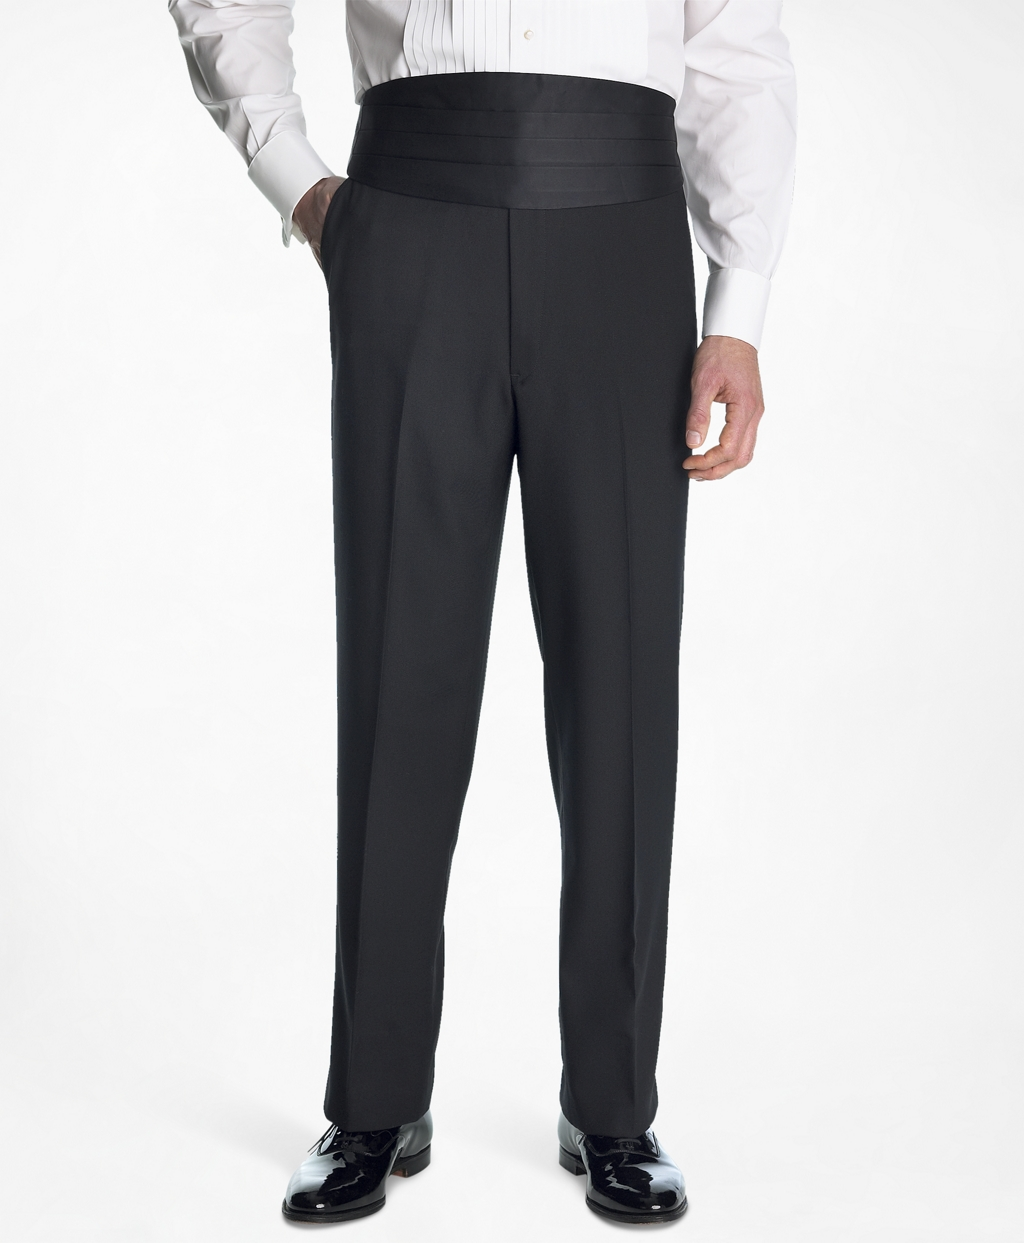 Edwardian Men's Formal Wear Brooks Brothers Mens 1818 Plain-Front Tuxedo Trousers $300.00 AT vintagedancer.com